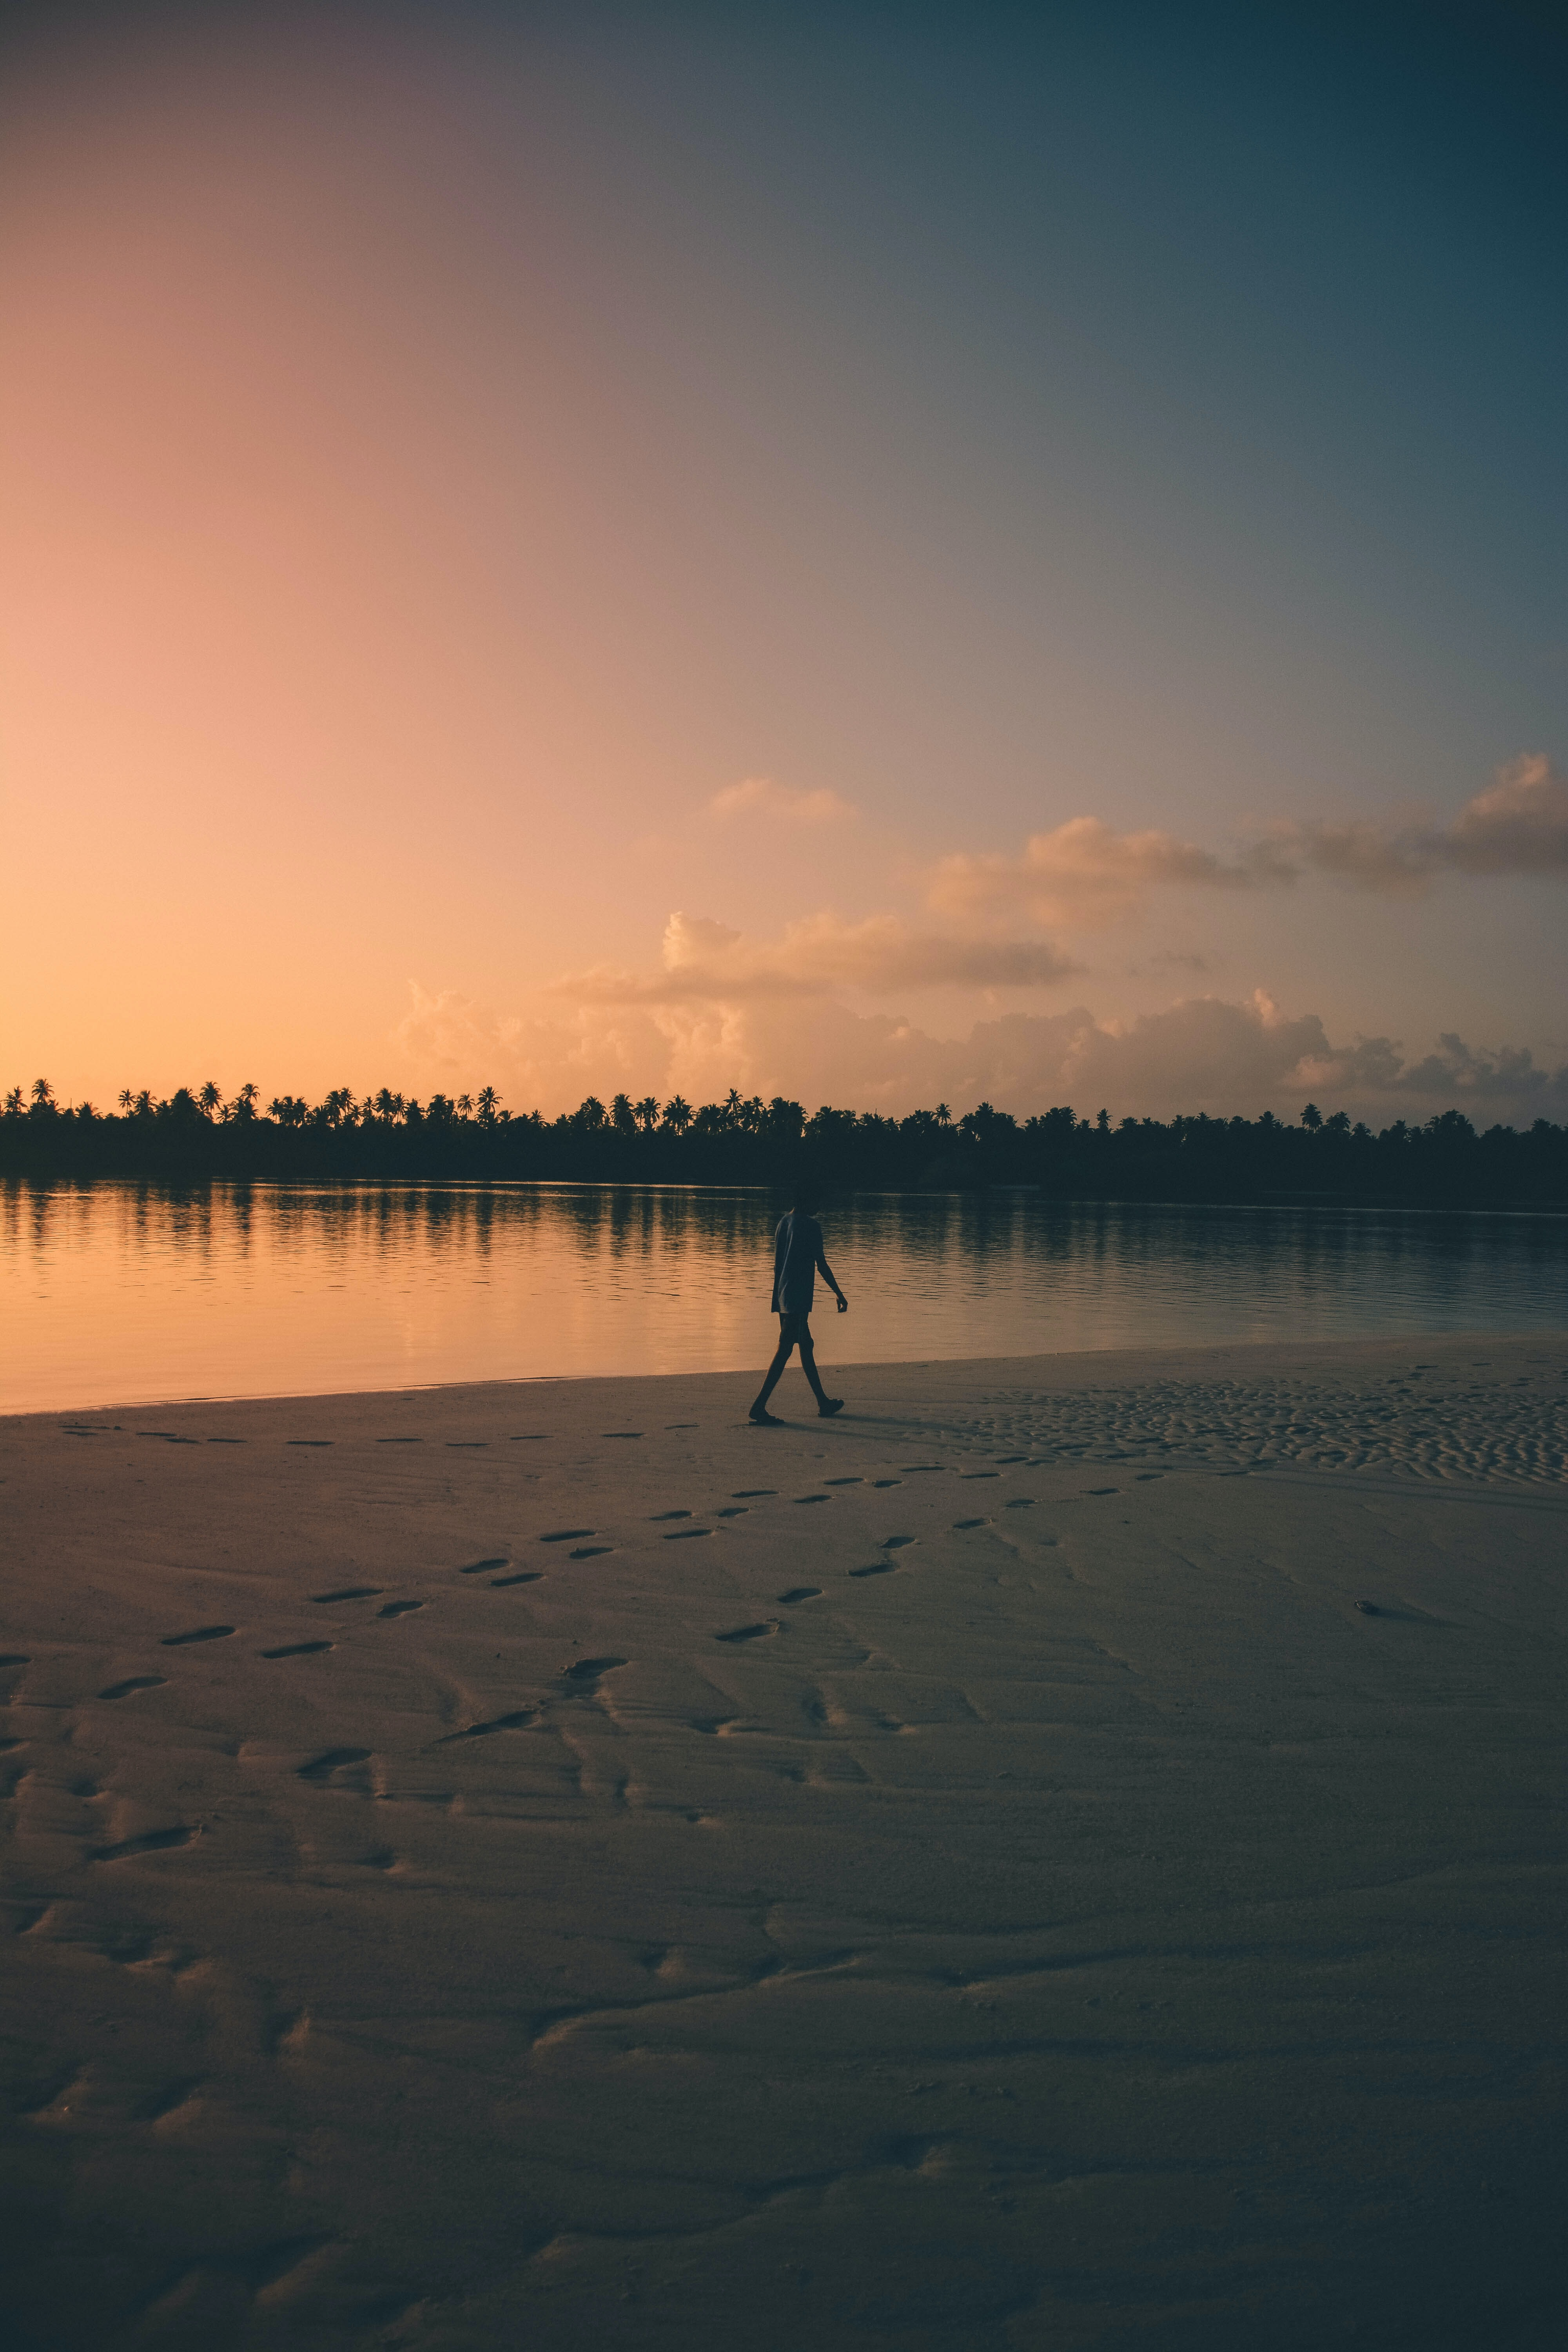 person walking on shore during sunset